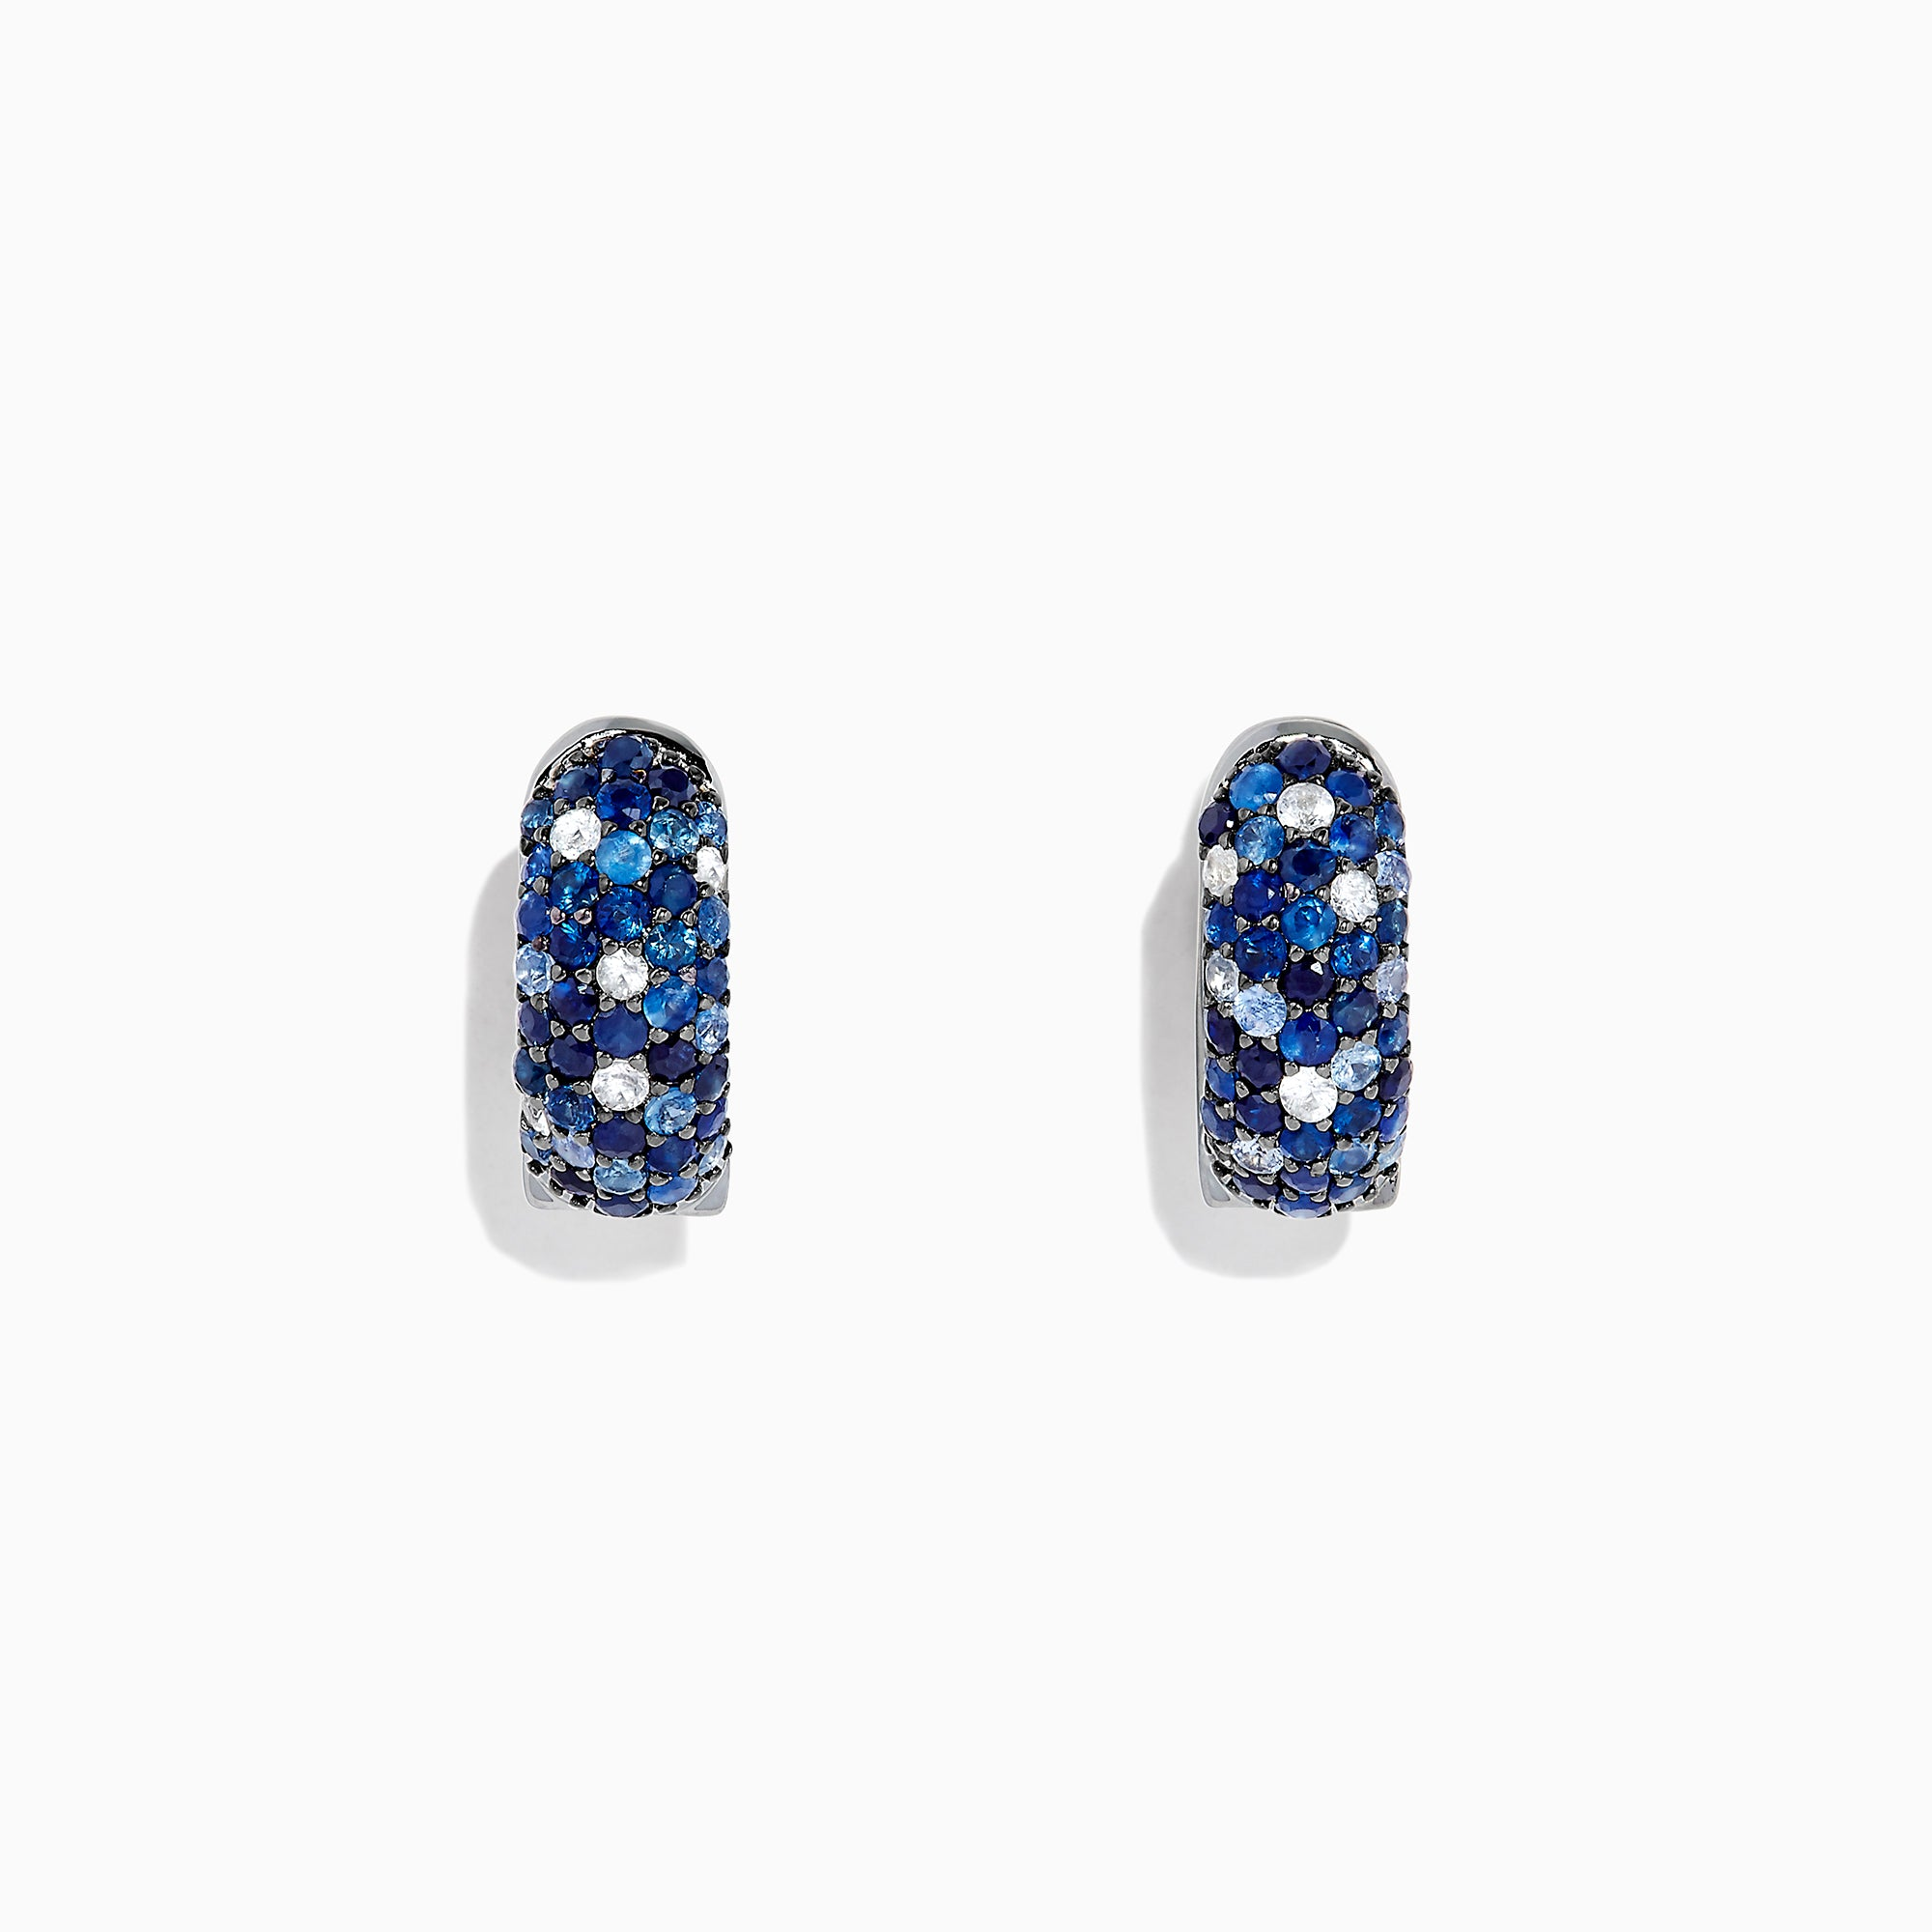 Effy 925 Sterling Silver Blue and White Sapphire Splash Earrings, 2.24 TCW